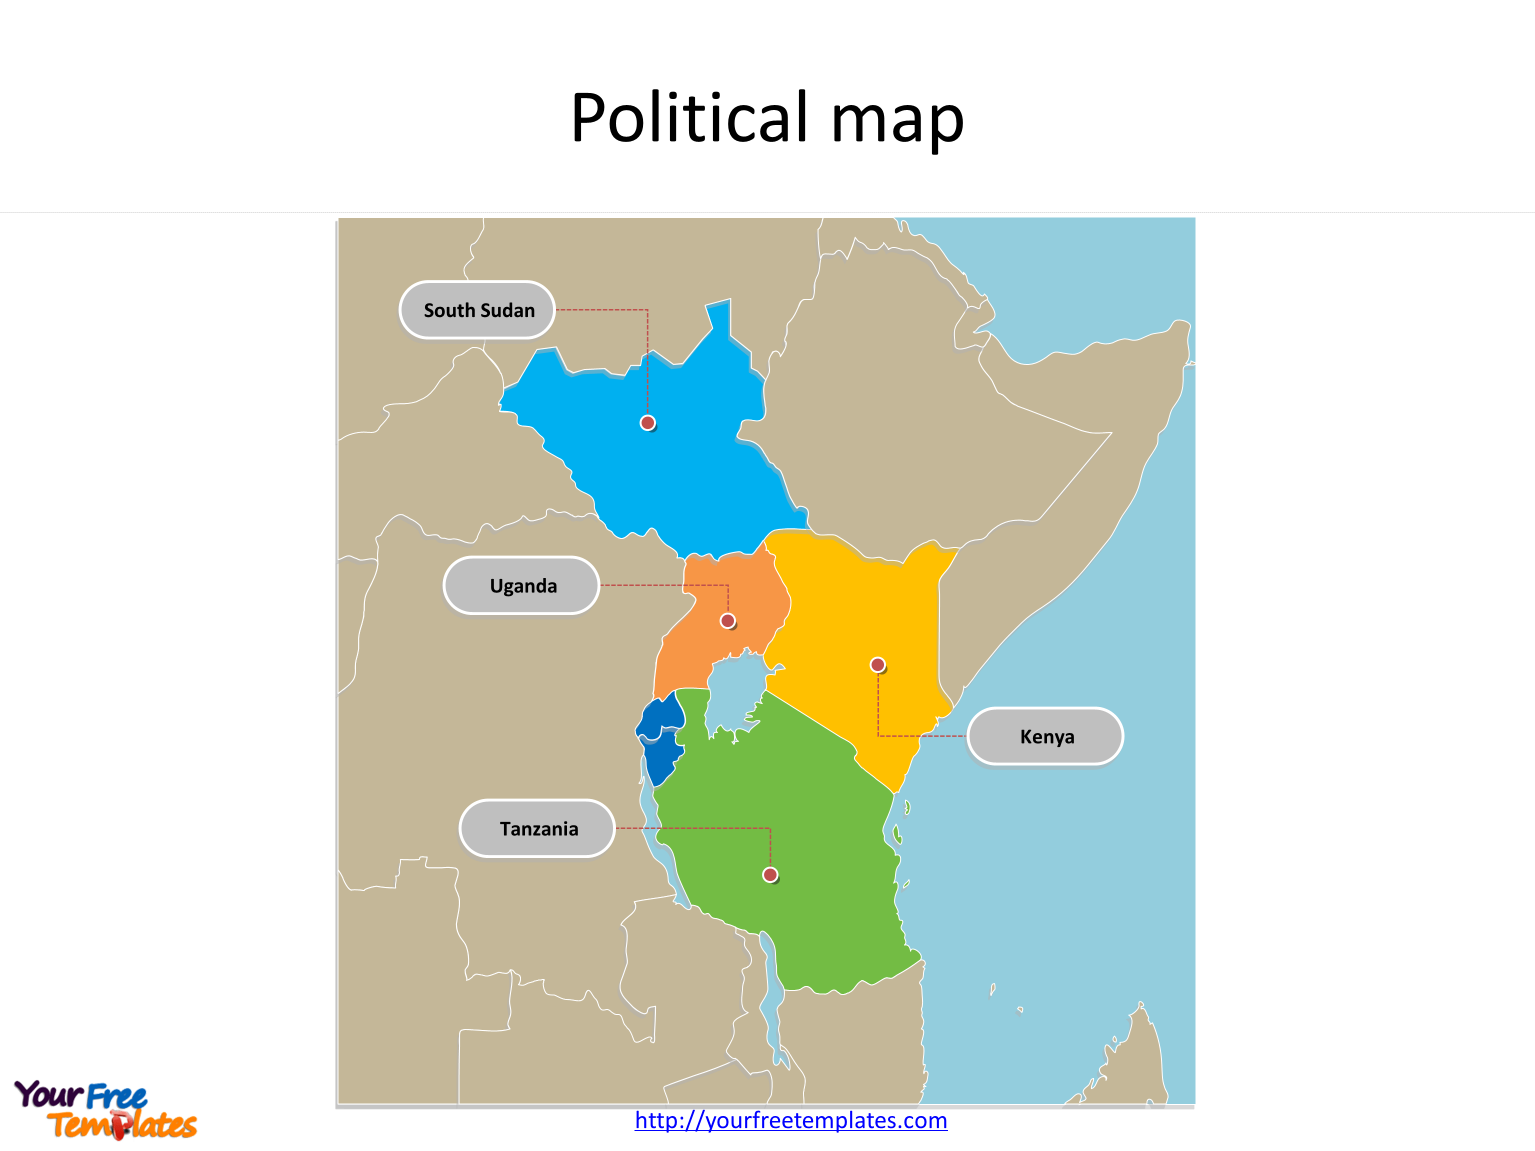 Map of East African Community with individual countries and major Countries labeled on the East African Community PowerPoint map